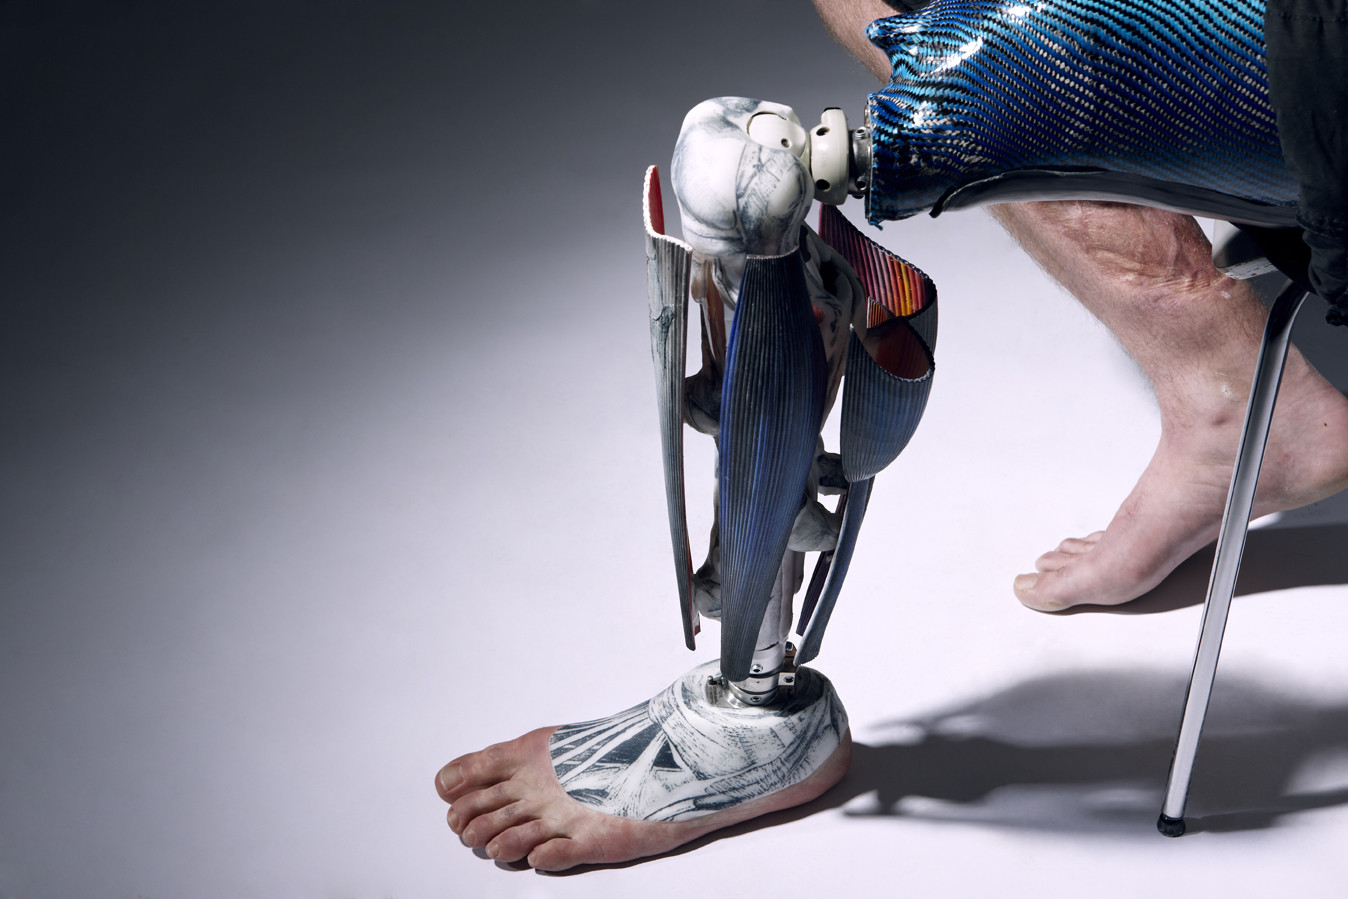 Prótesis para Ryan Seary - 'The Alternative Limb Project'